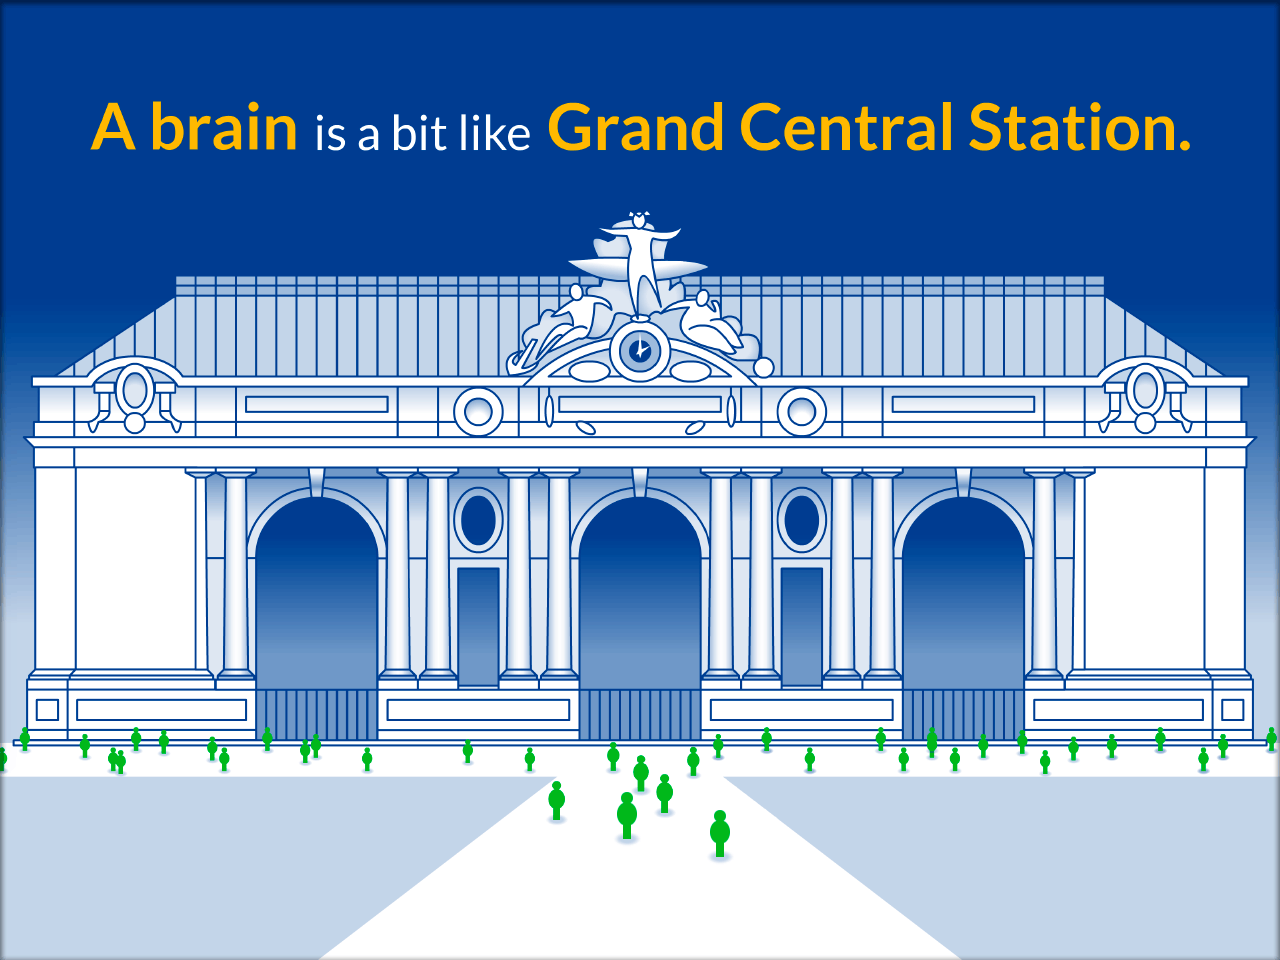 Grand Central Station illustration